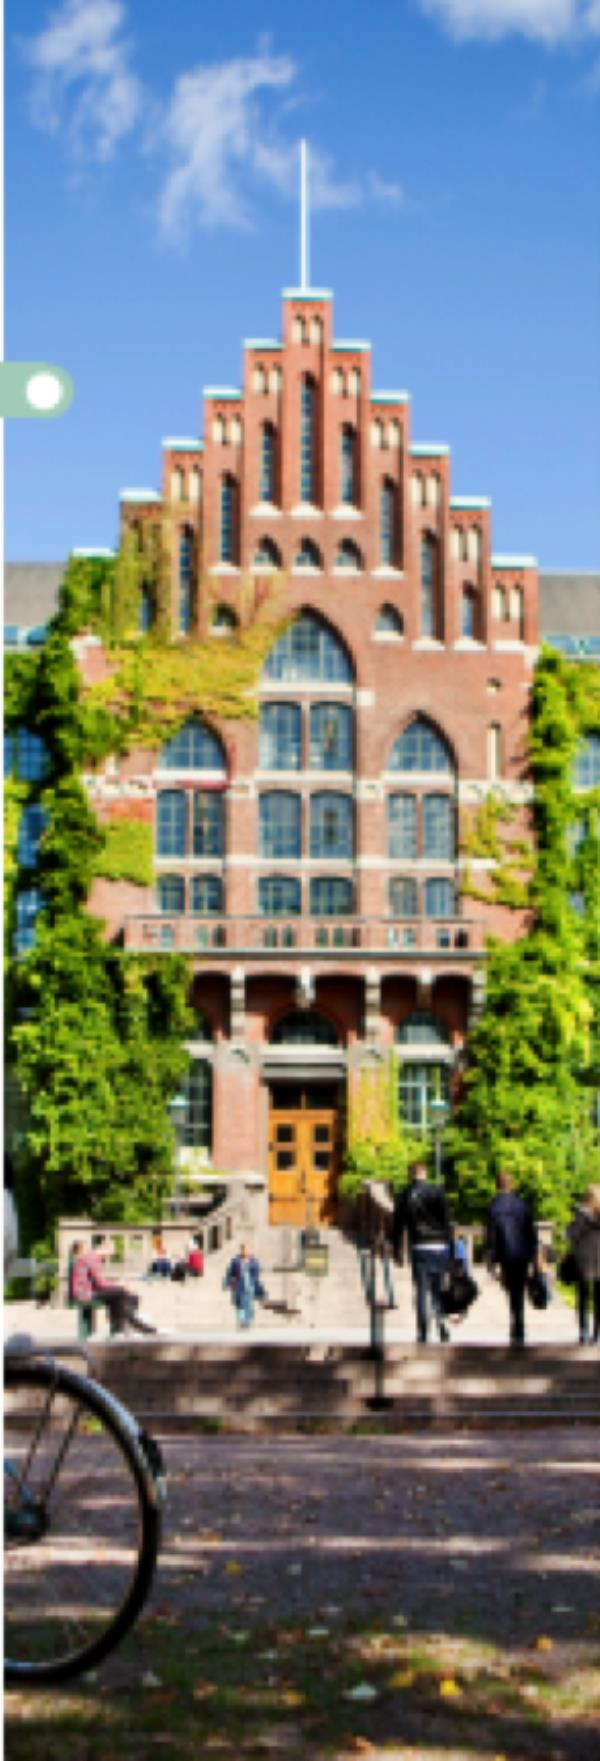 Study In Sweden  Study Pre Masters Preparation Program of 3 Semester with ON CAMPUS starting November 2016 and gain entry in any Program of your choice with Lund University ,   Sweden's top-ranked university and ranked 70th in the world.  T - by 7087429405  CONNECT OVERSEAS STUDY ABROAD, Chandigarh